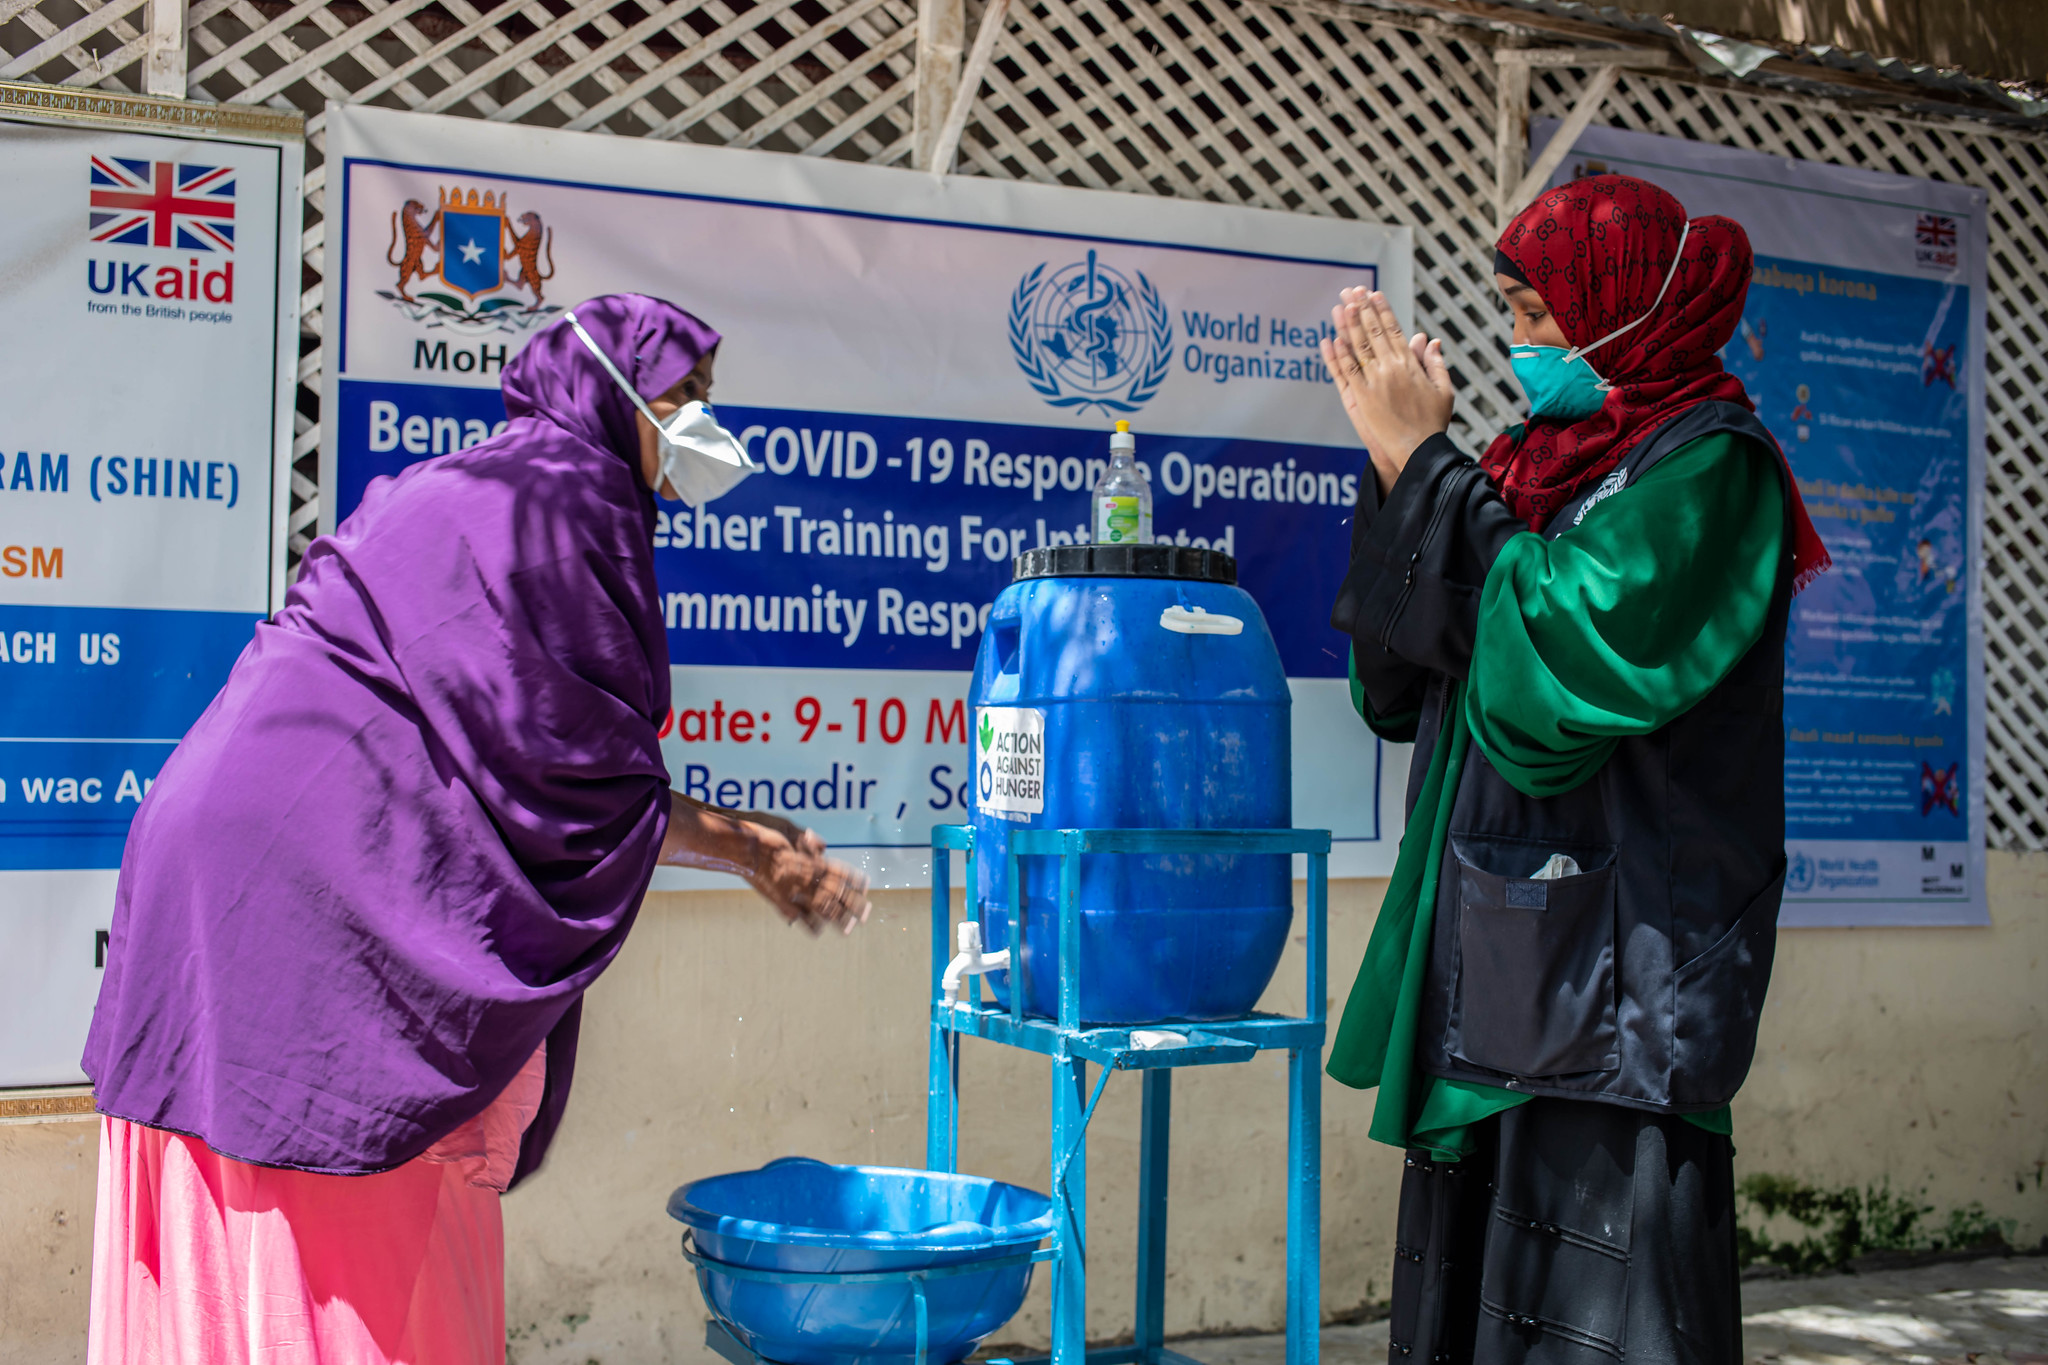 COVID19 Claims More Lives in Somalia with Vaccine Still Distant - Newslibre